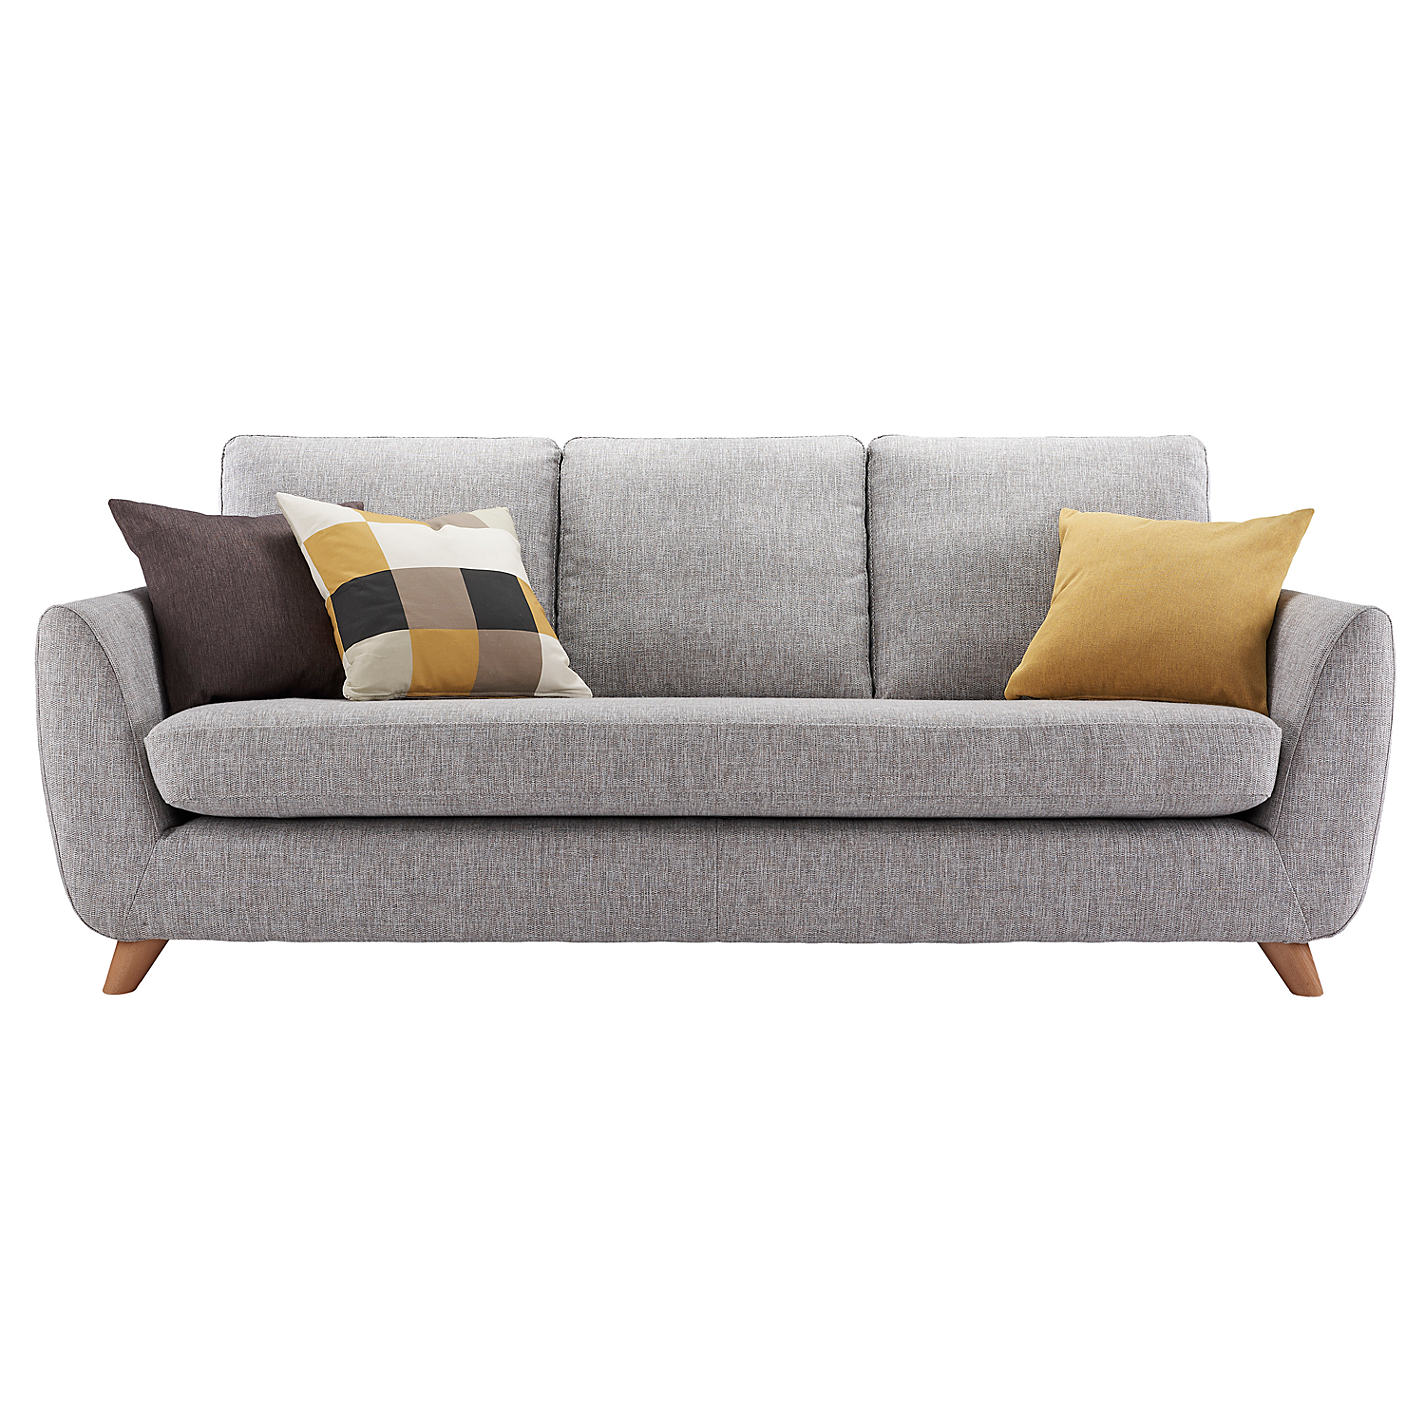 G plan sofas g plan cheyney court three piece lounge suite for Sofa 7 seater